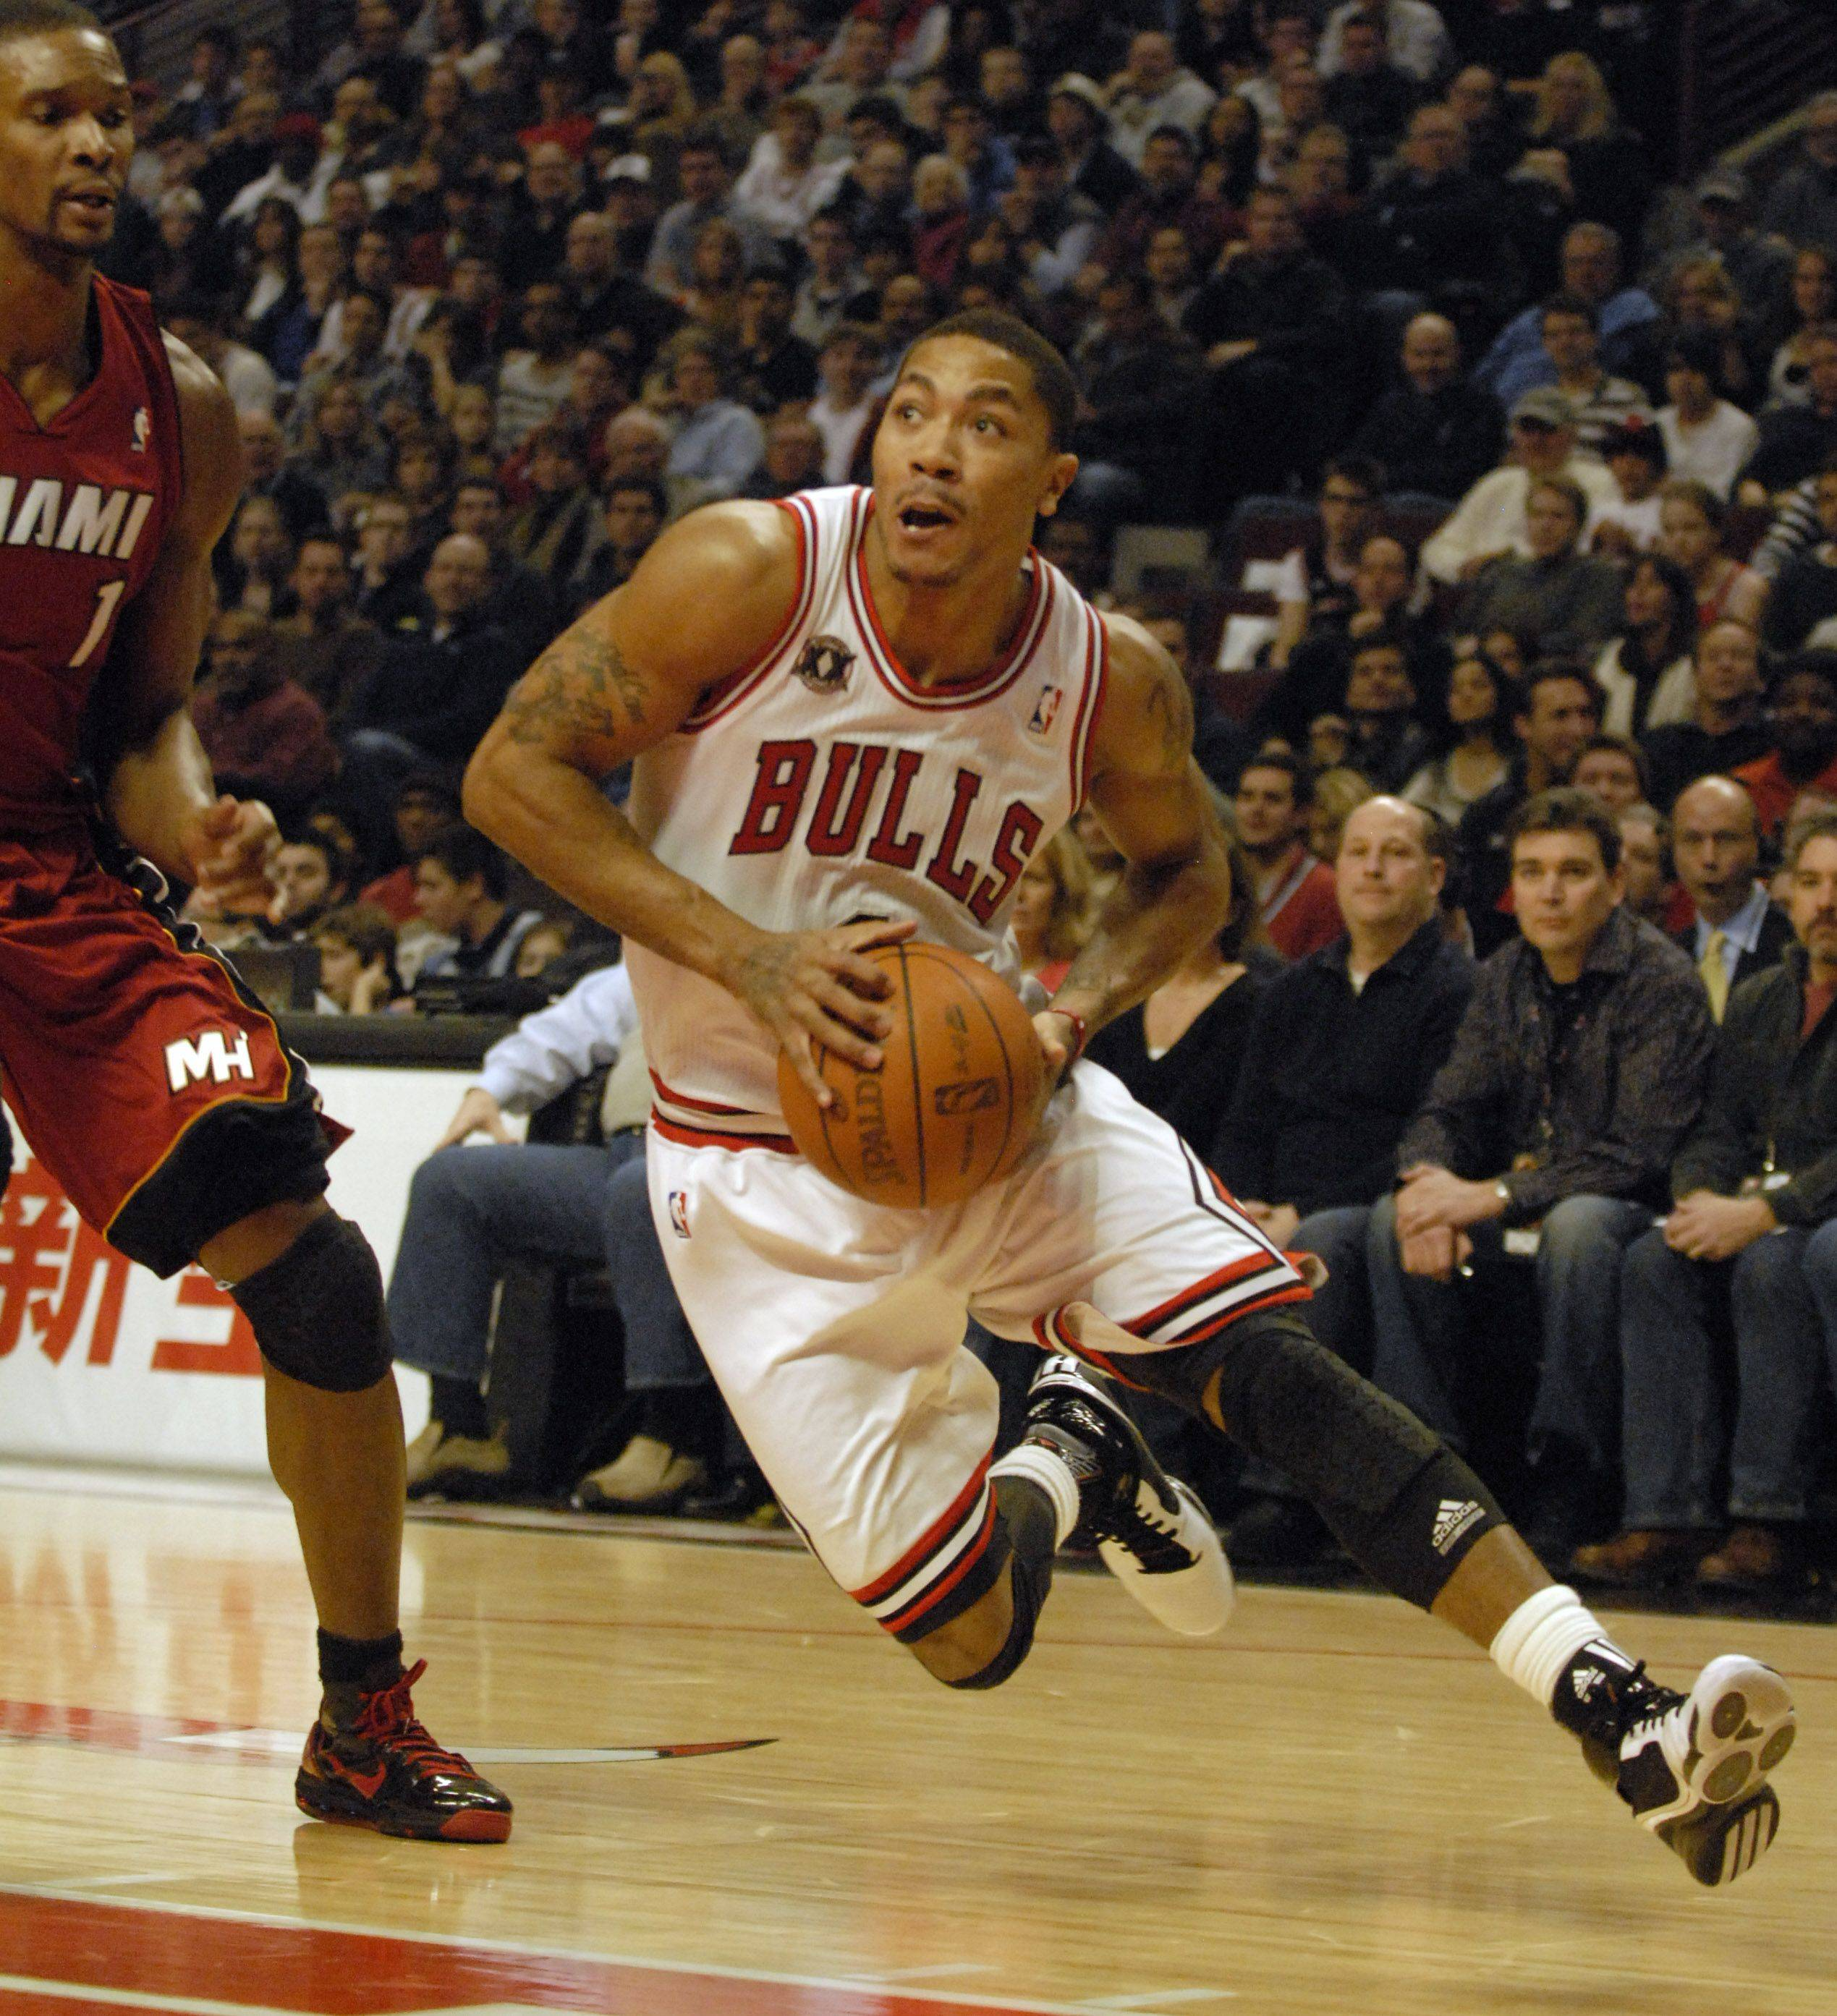 Derrick Rose drives to the basket in the first quarter during Saturday's game at the United Center against the Miami Heat